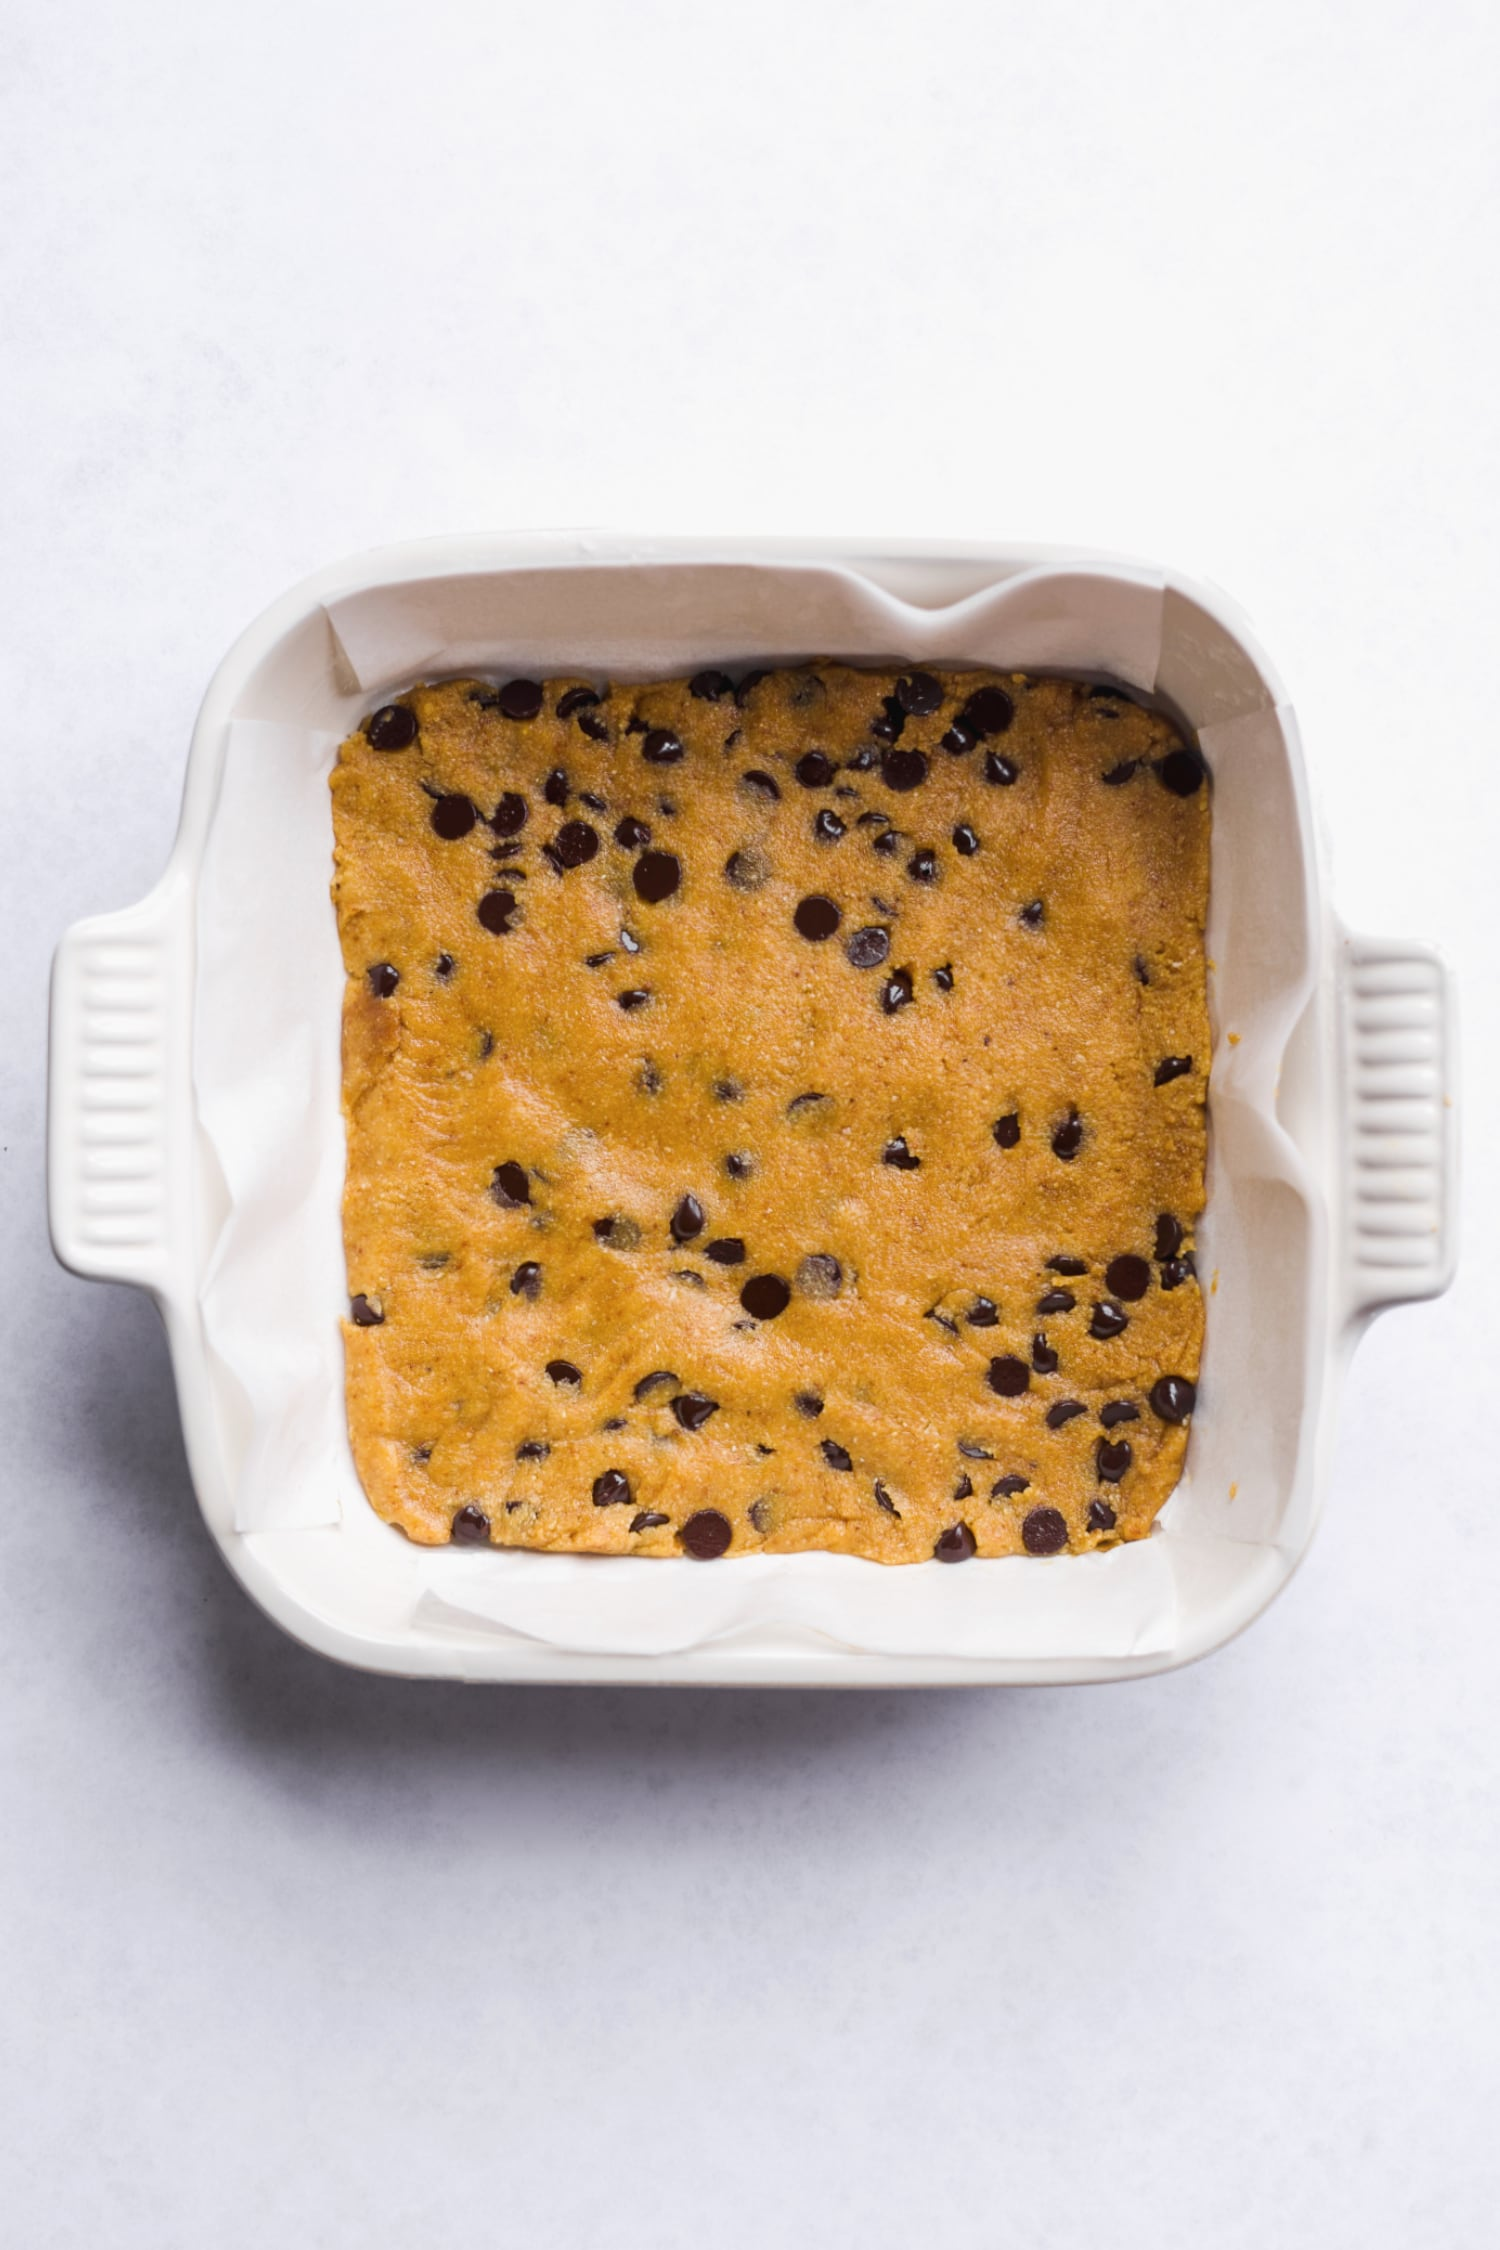 base layer of paleo cookie dough in the pan